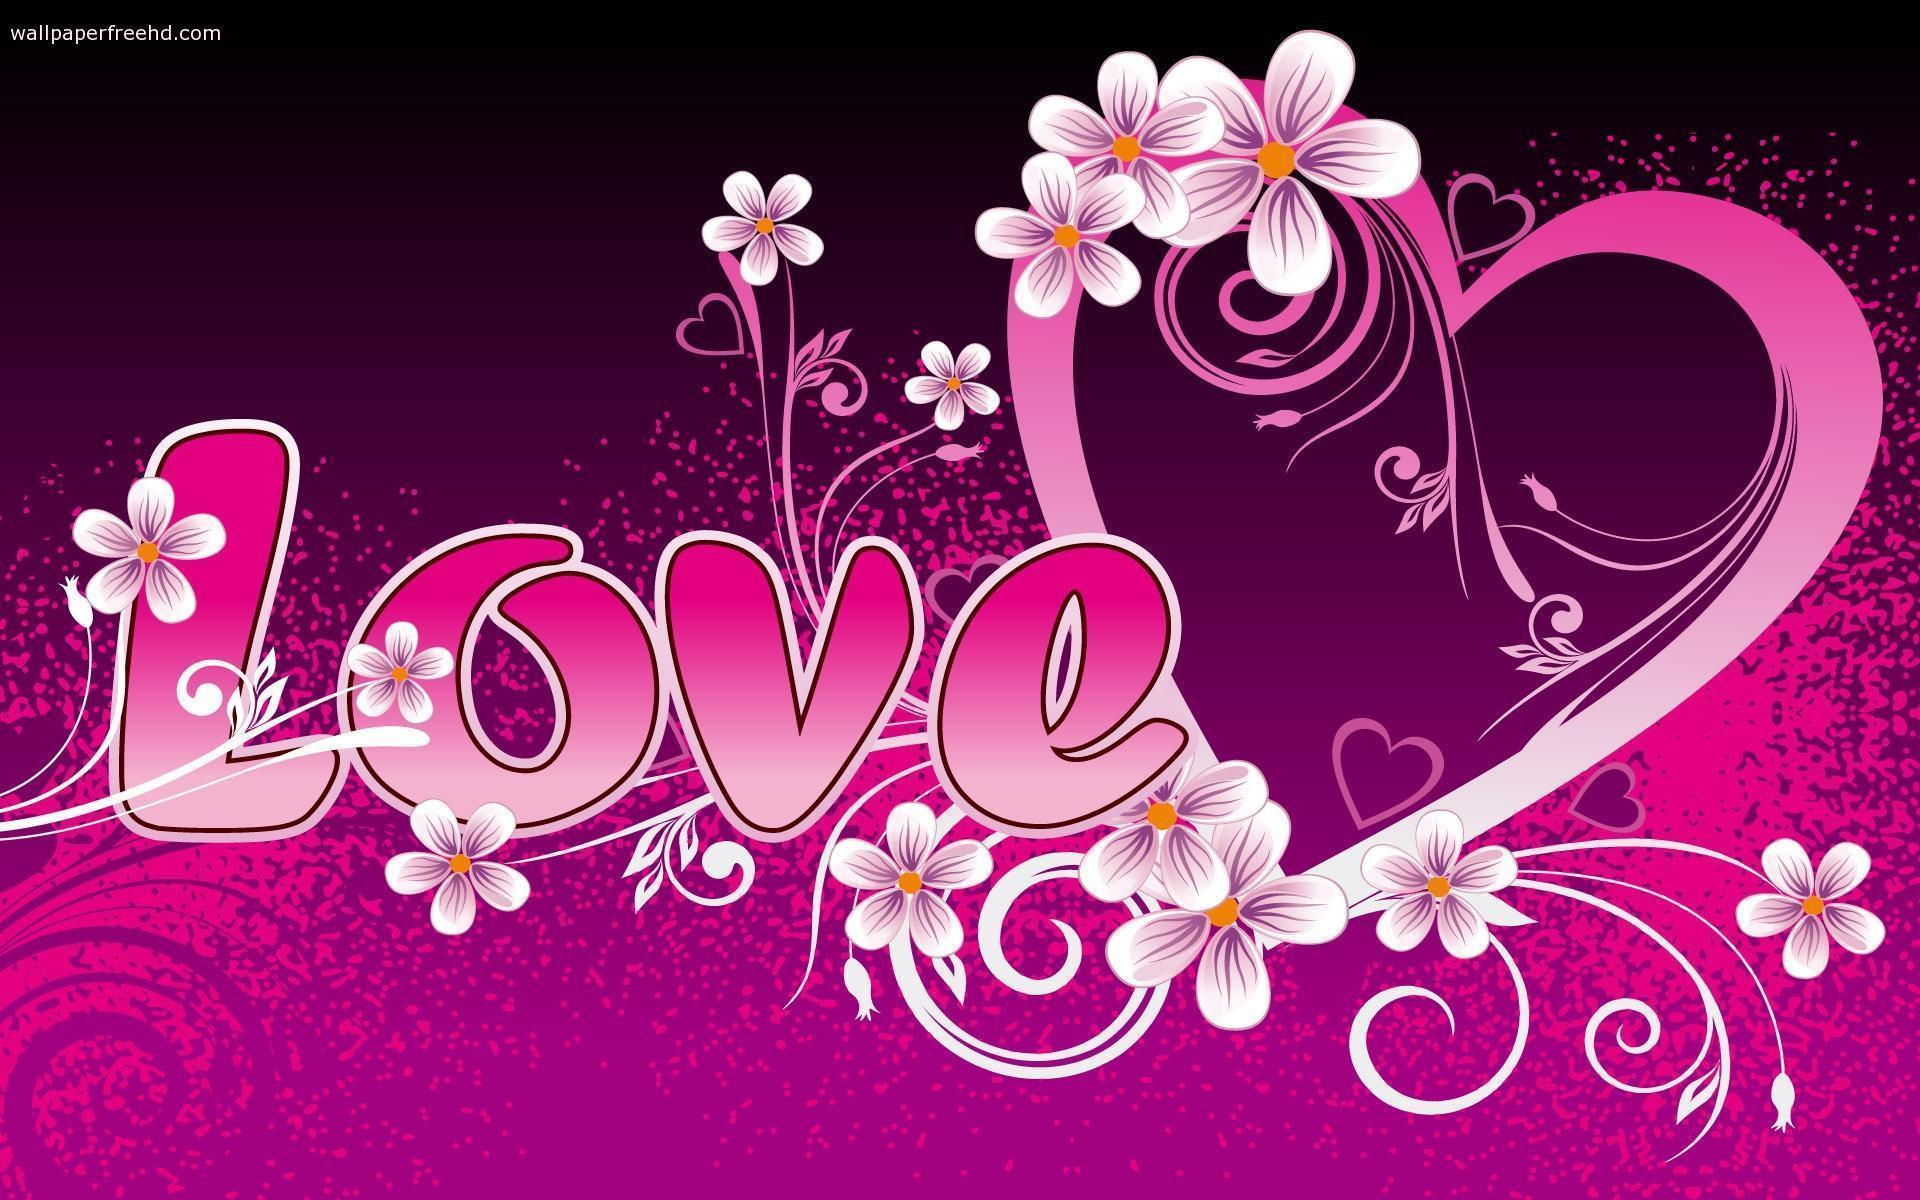 Love backgrounds wallpapers wallpaper cave wallpapers for background wallpaper love voltagebd Images